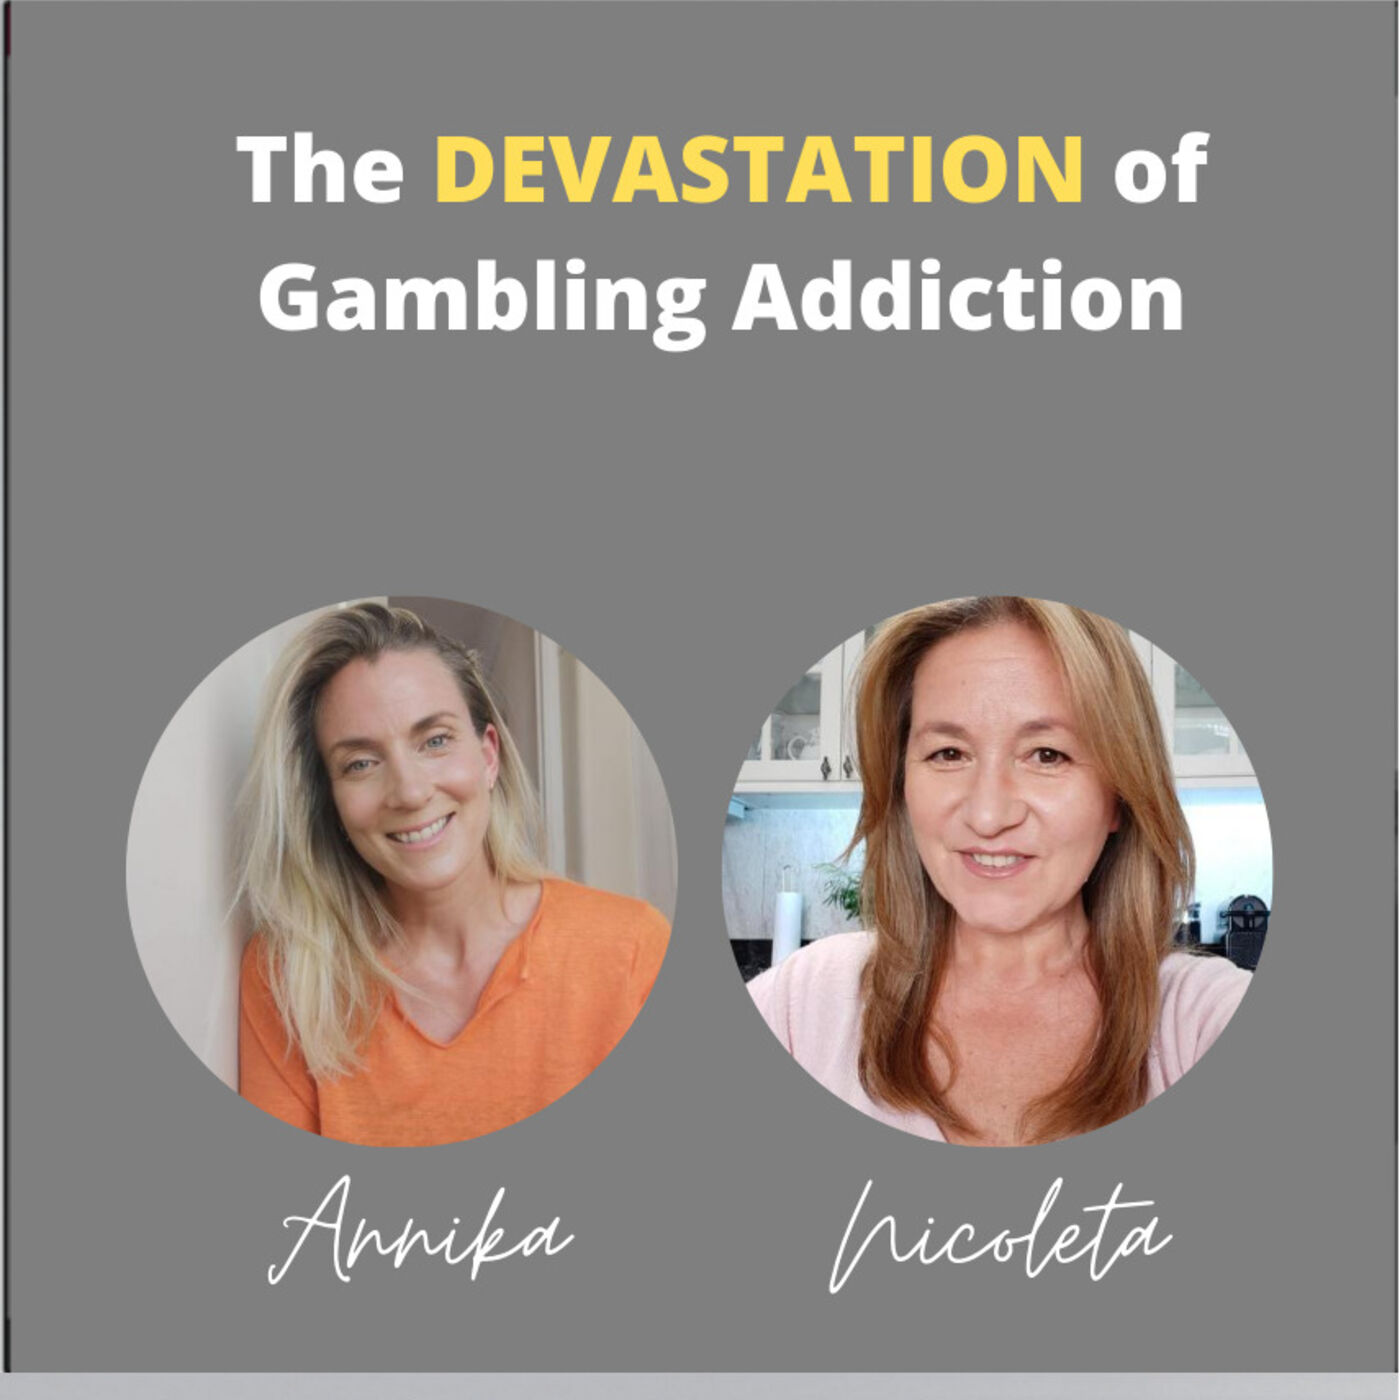 8 - The Devastation of Gambling Addiction